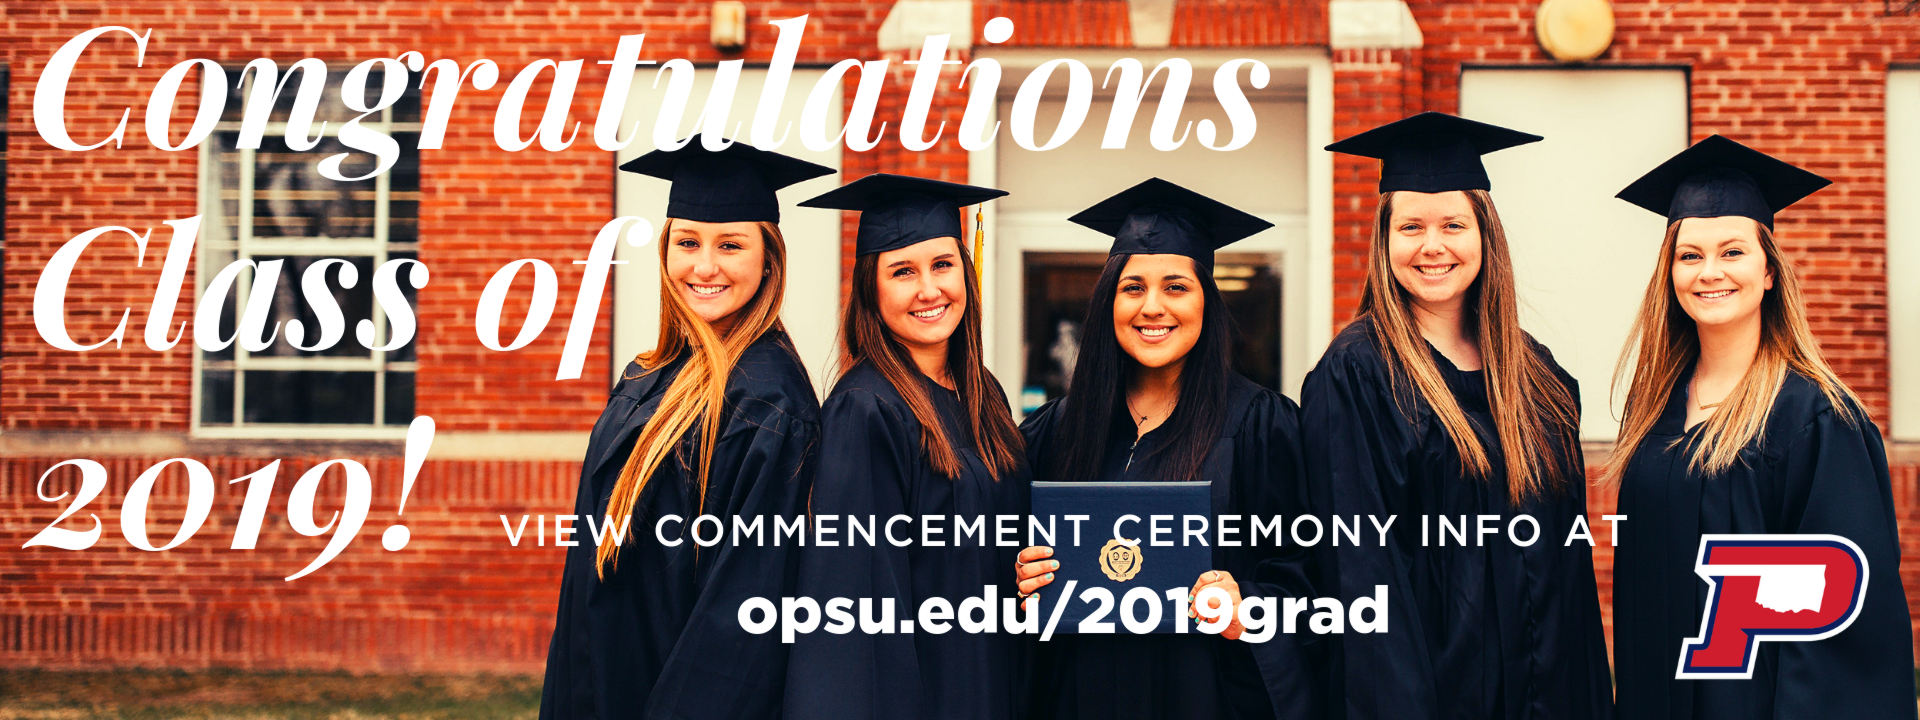 Congratulations Class of 2019 - VIEW COMMENCEMENT CEREMONY INFO